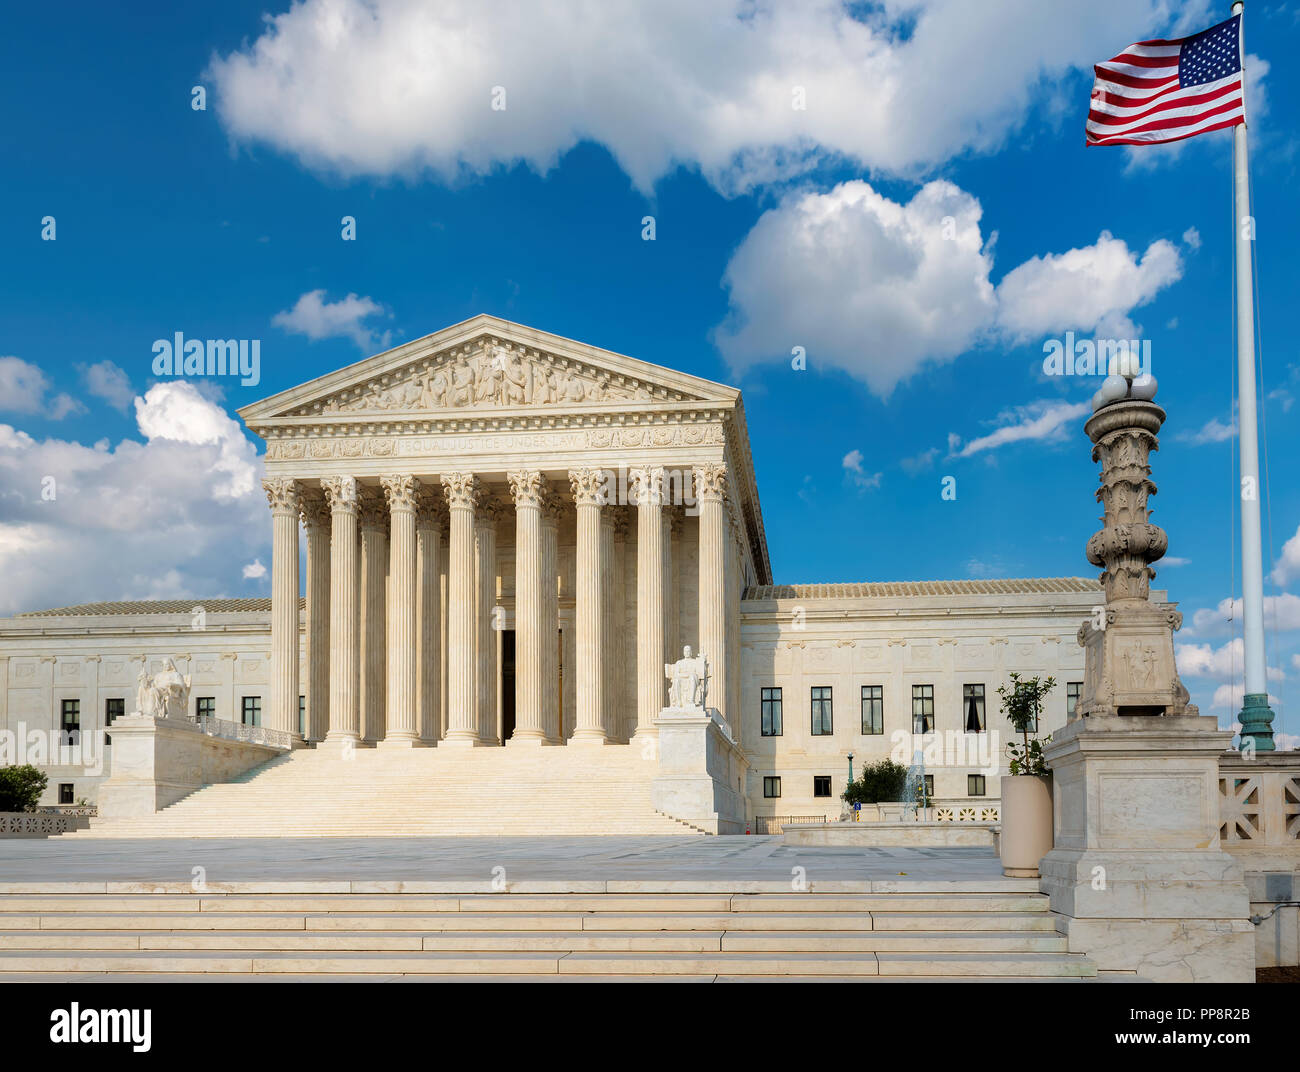 United States Supreme Court in Washington DC - Stock Image